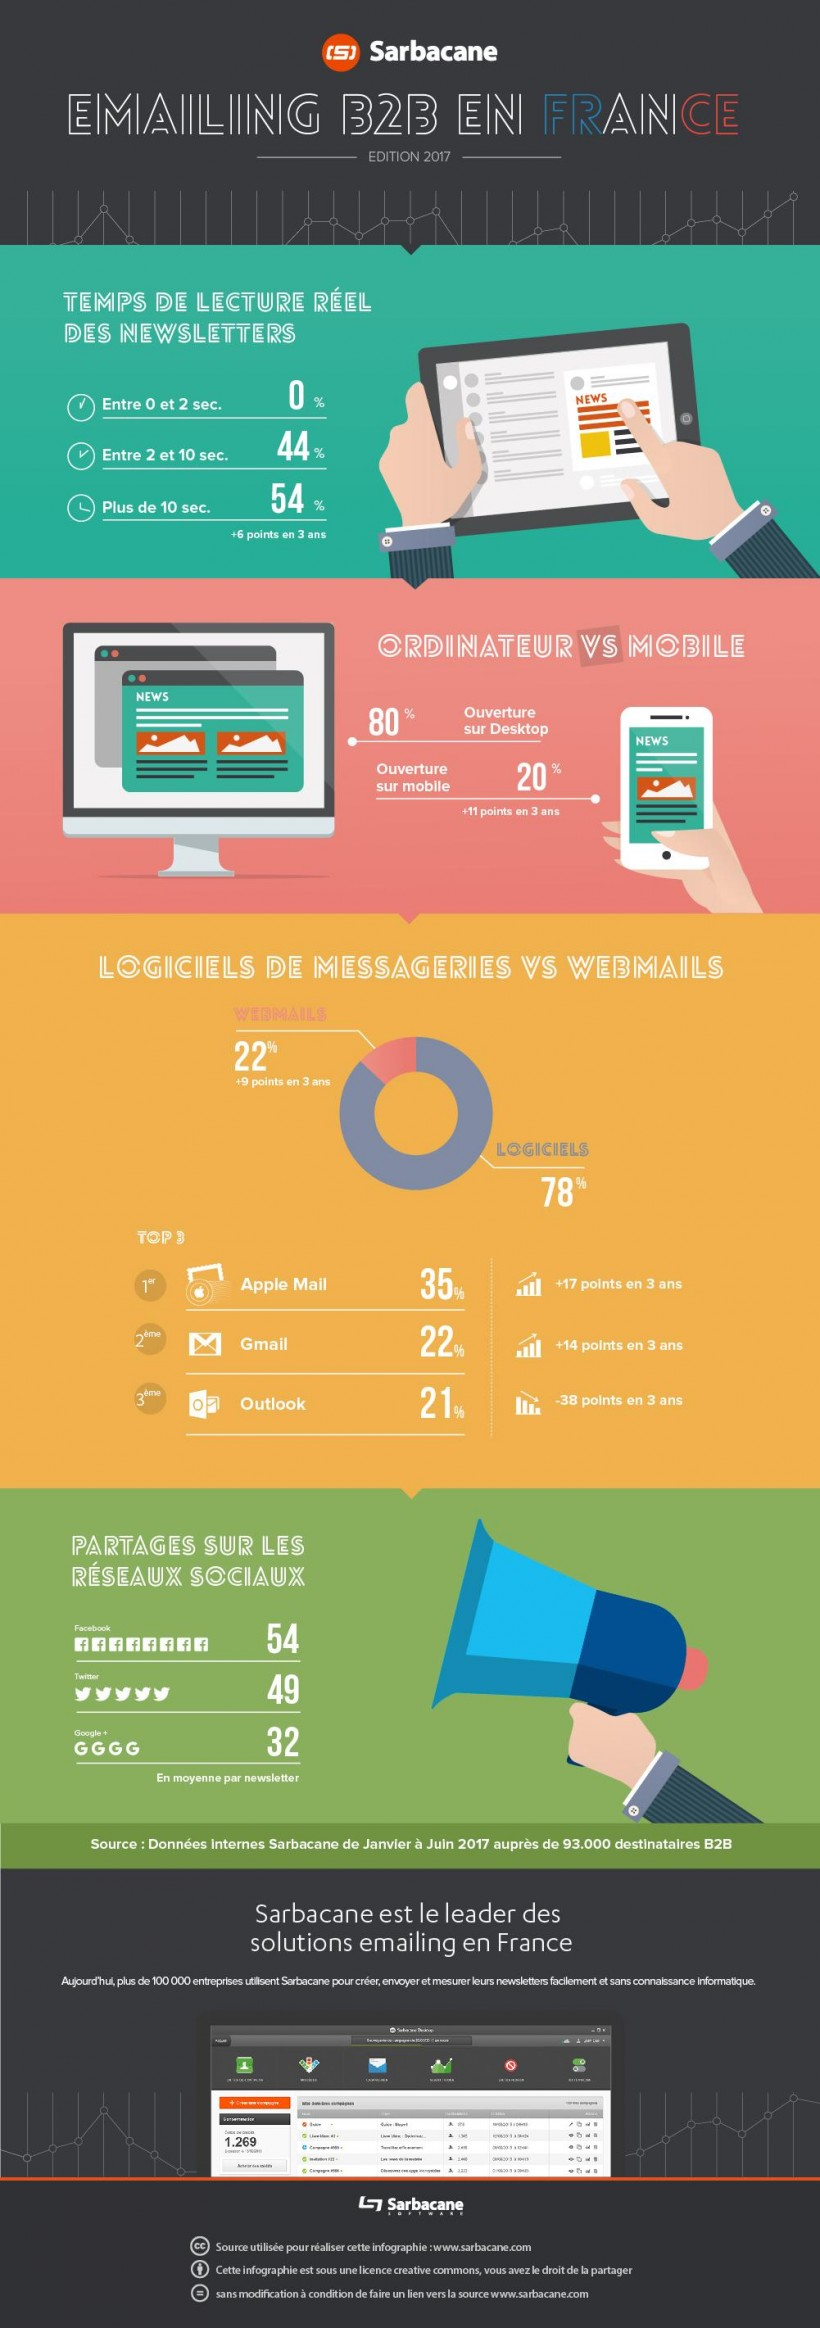 Infographie 338 -email B2B-2017